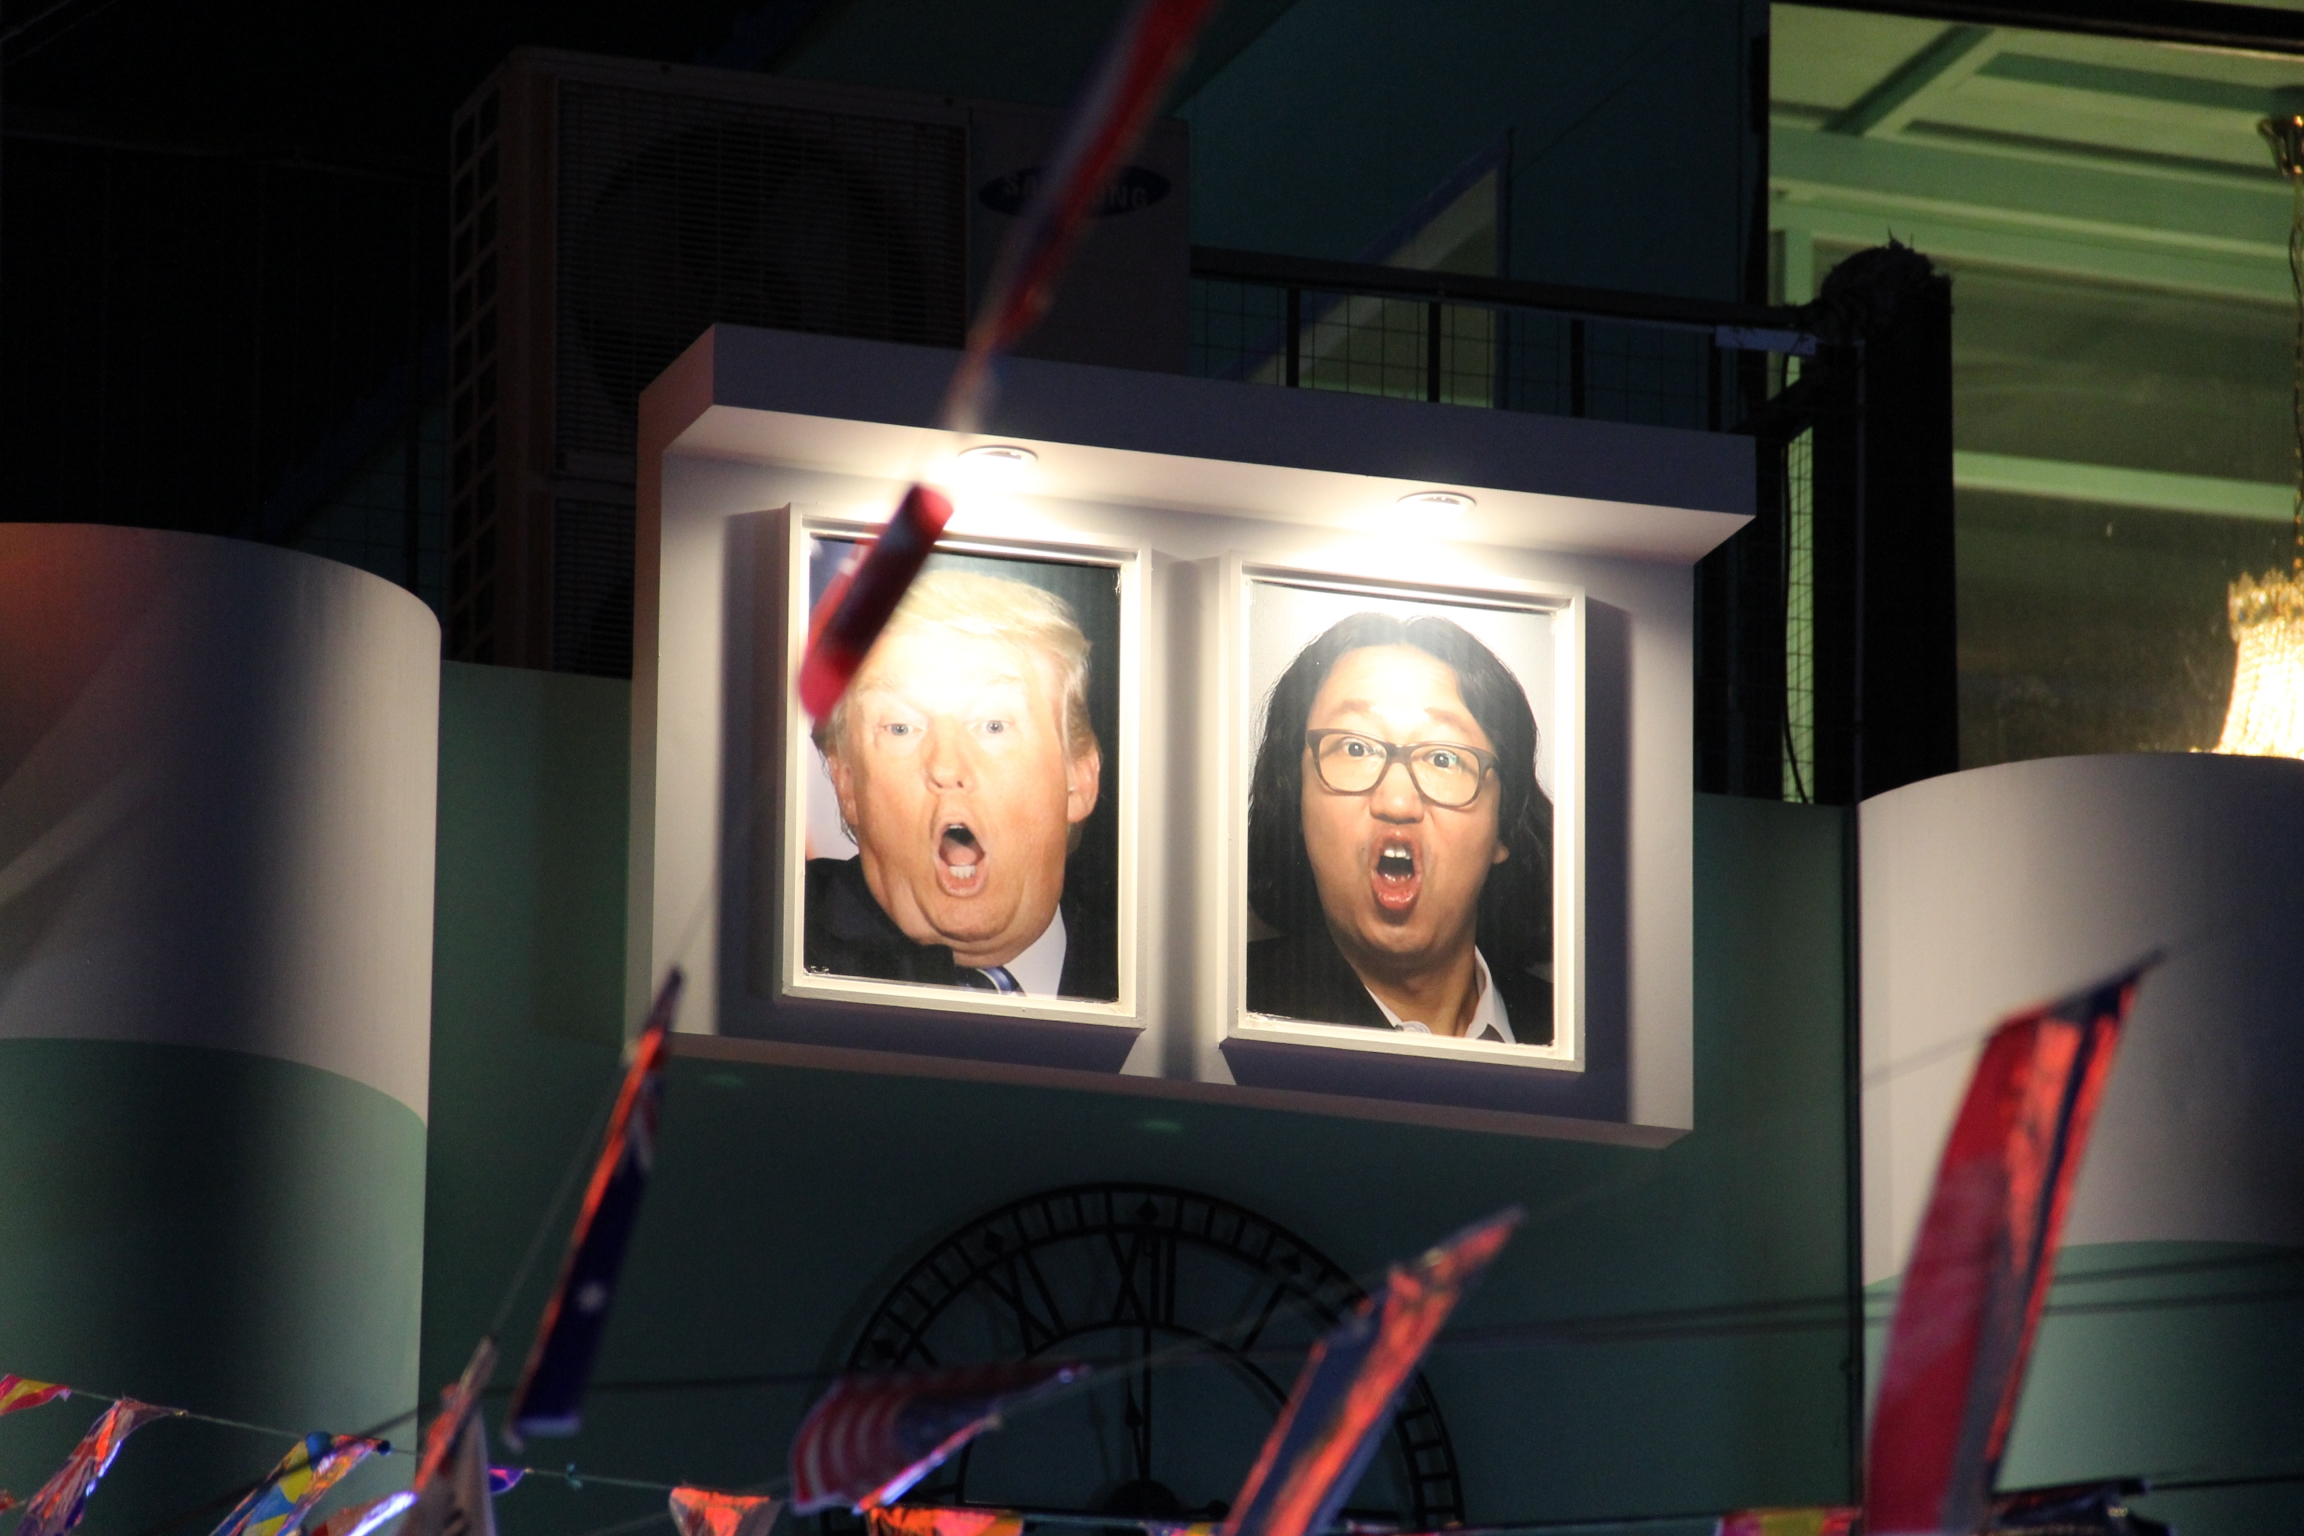 Caricaturelike portraits of United States President Donald Trump and South Korean comedian Kim Gyeong-jin are displayed outside the pub.